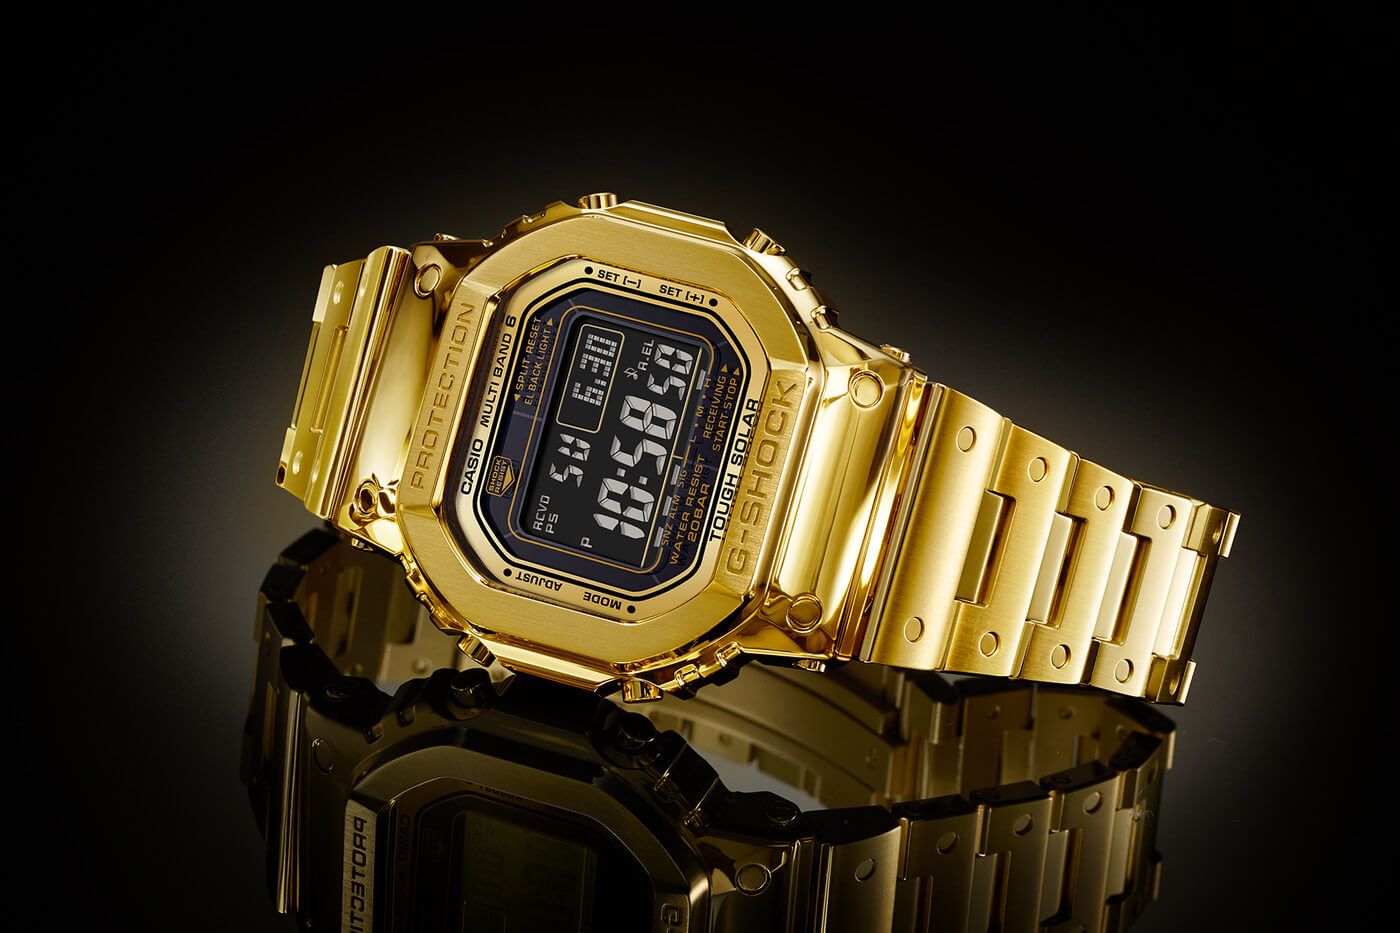 e45ee7778eed The Most Expensive G-Shock Watch – G-Central G-Shock Watch Fan Blog